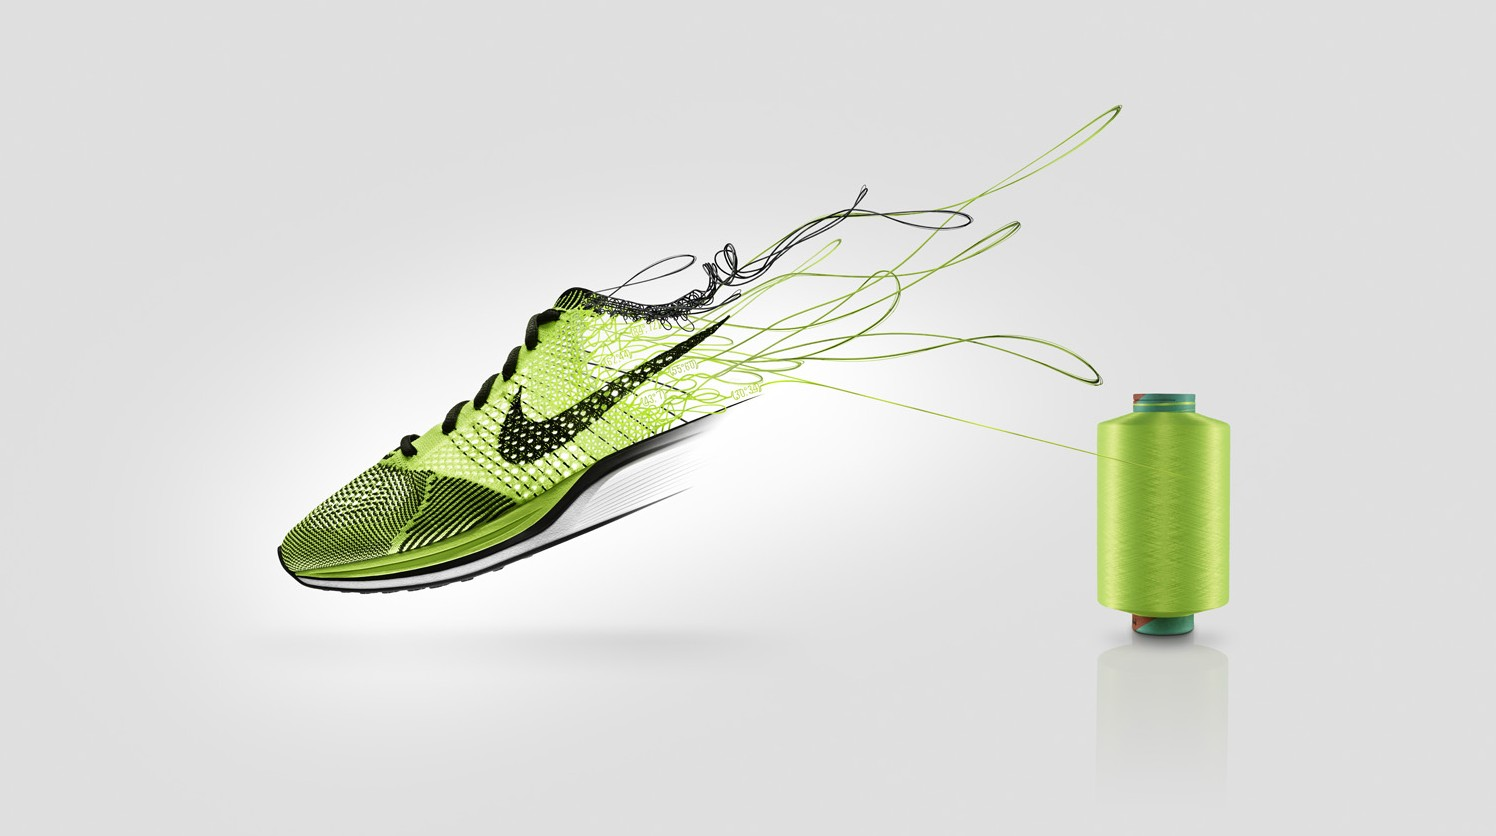 THIS IS NIKE FLYKNIT TECHNOLOGY